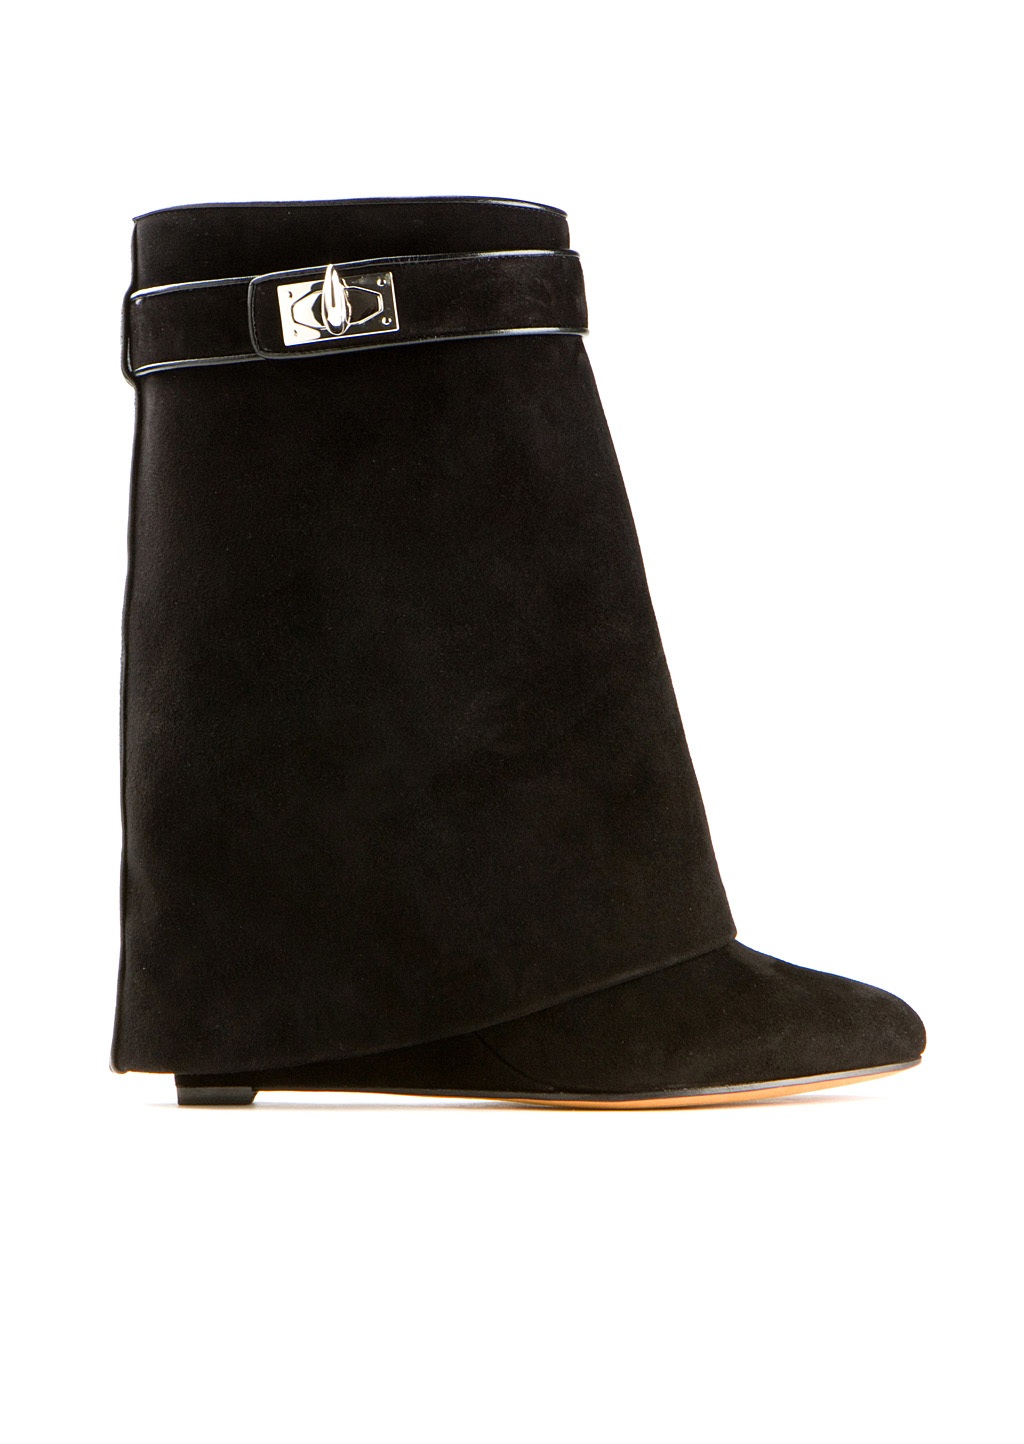 givenchy shark lock black suede wedge ankle boots in black